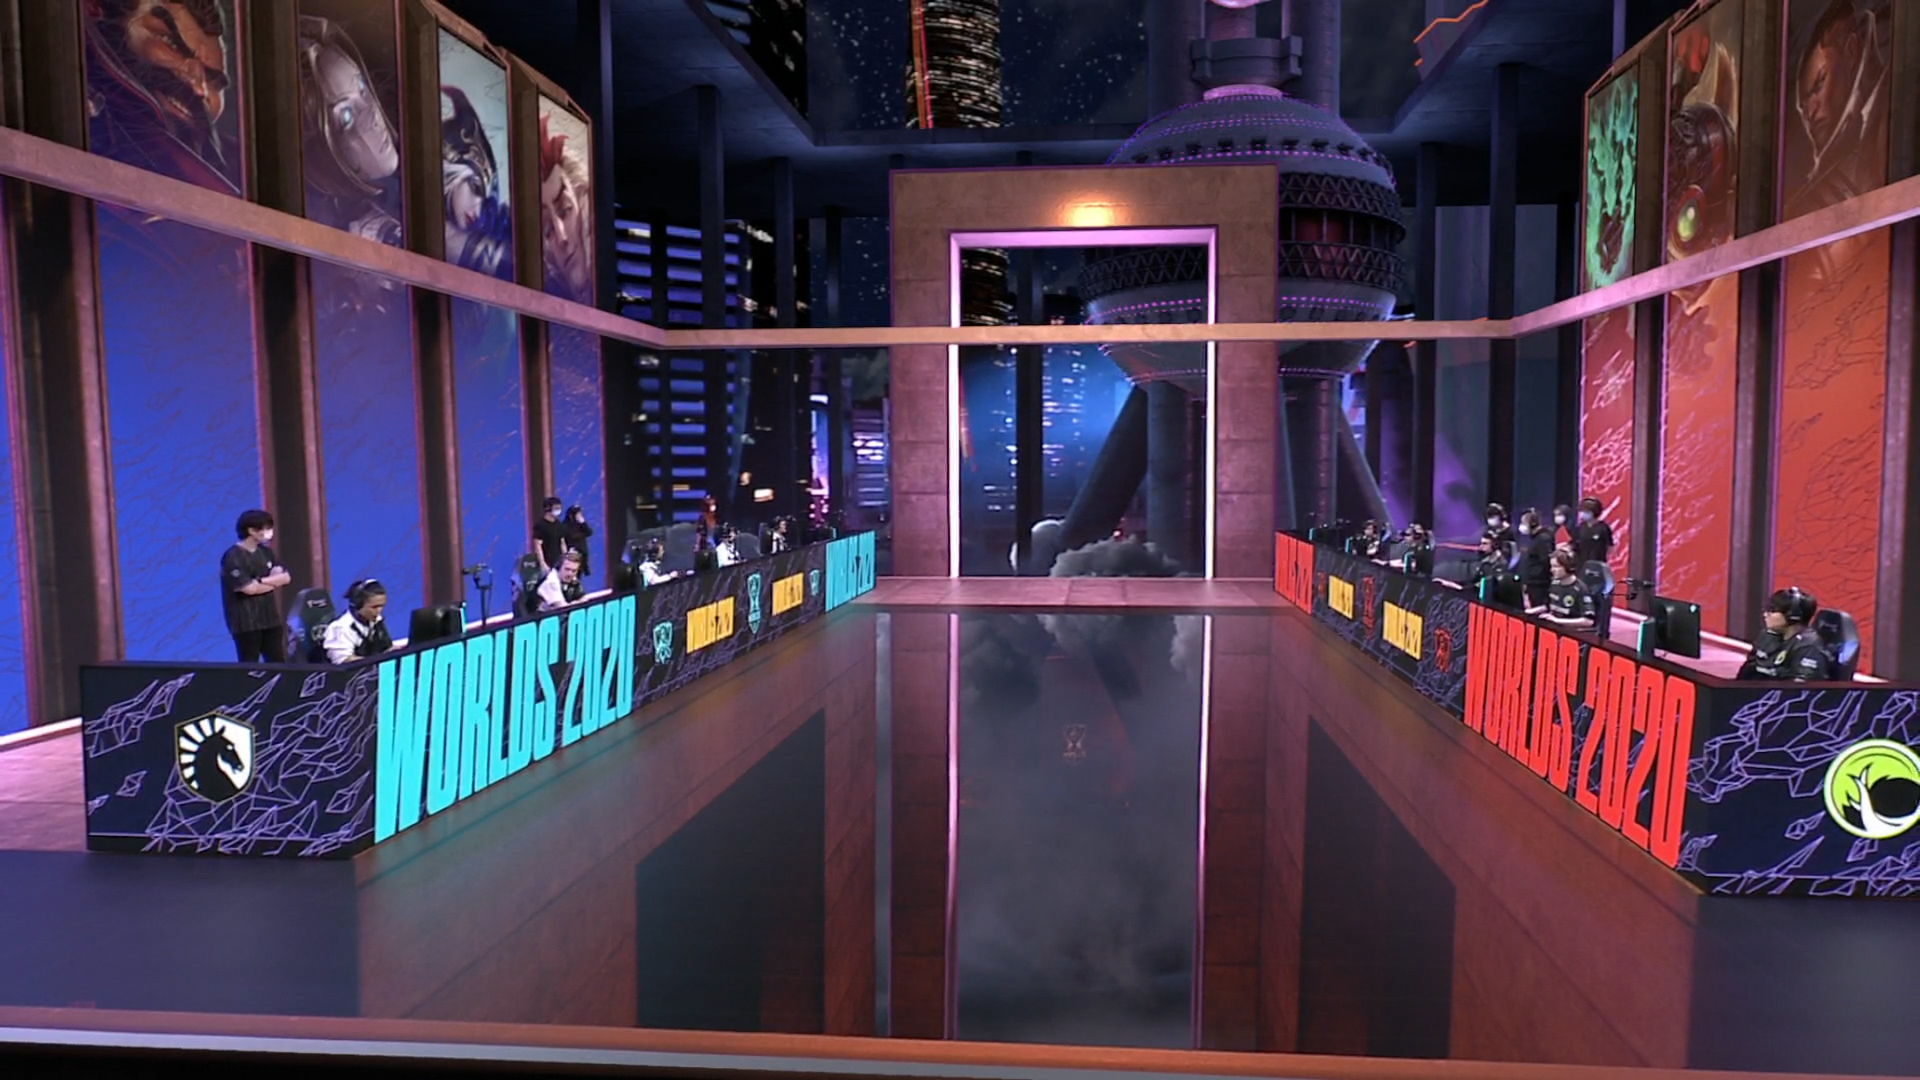 The Worlds 2020 League of Legends stage